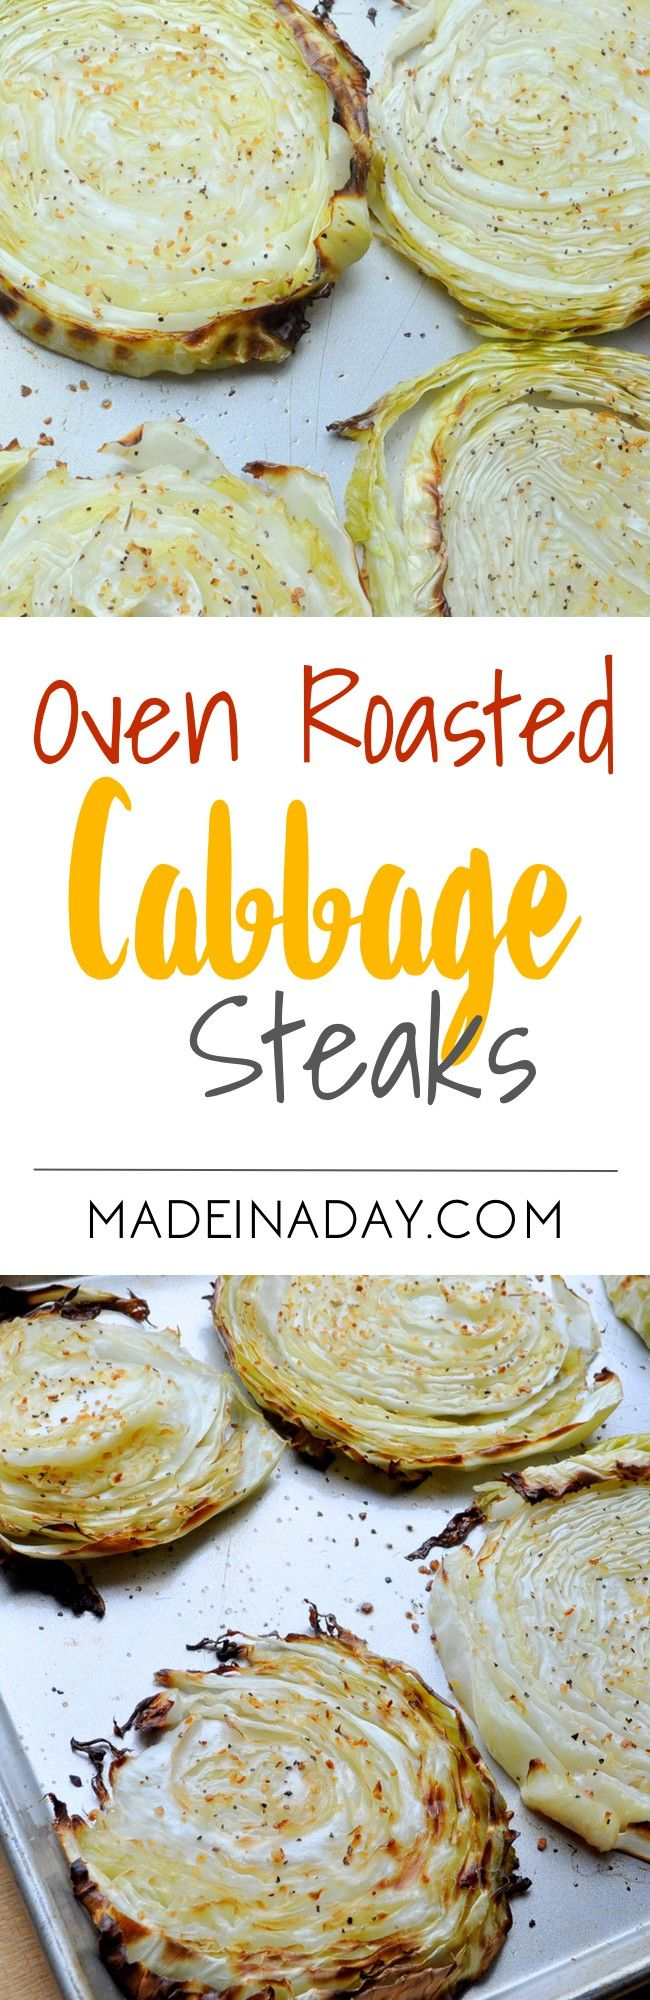 Roast Cabbage slices in the oven until they are tender. Great Low-carb side dish. Super easy recipe for Oven Roasted Cabbage steaks.  via @madeinaday